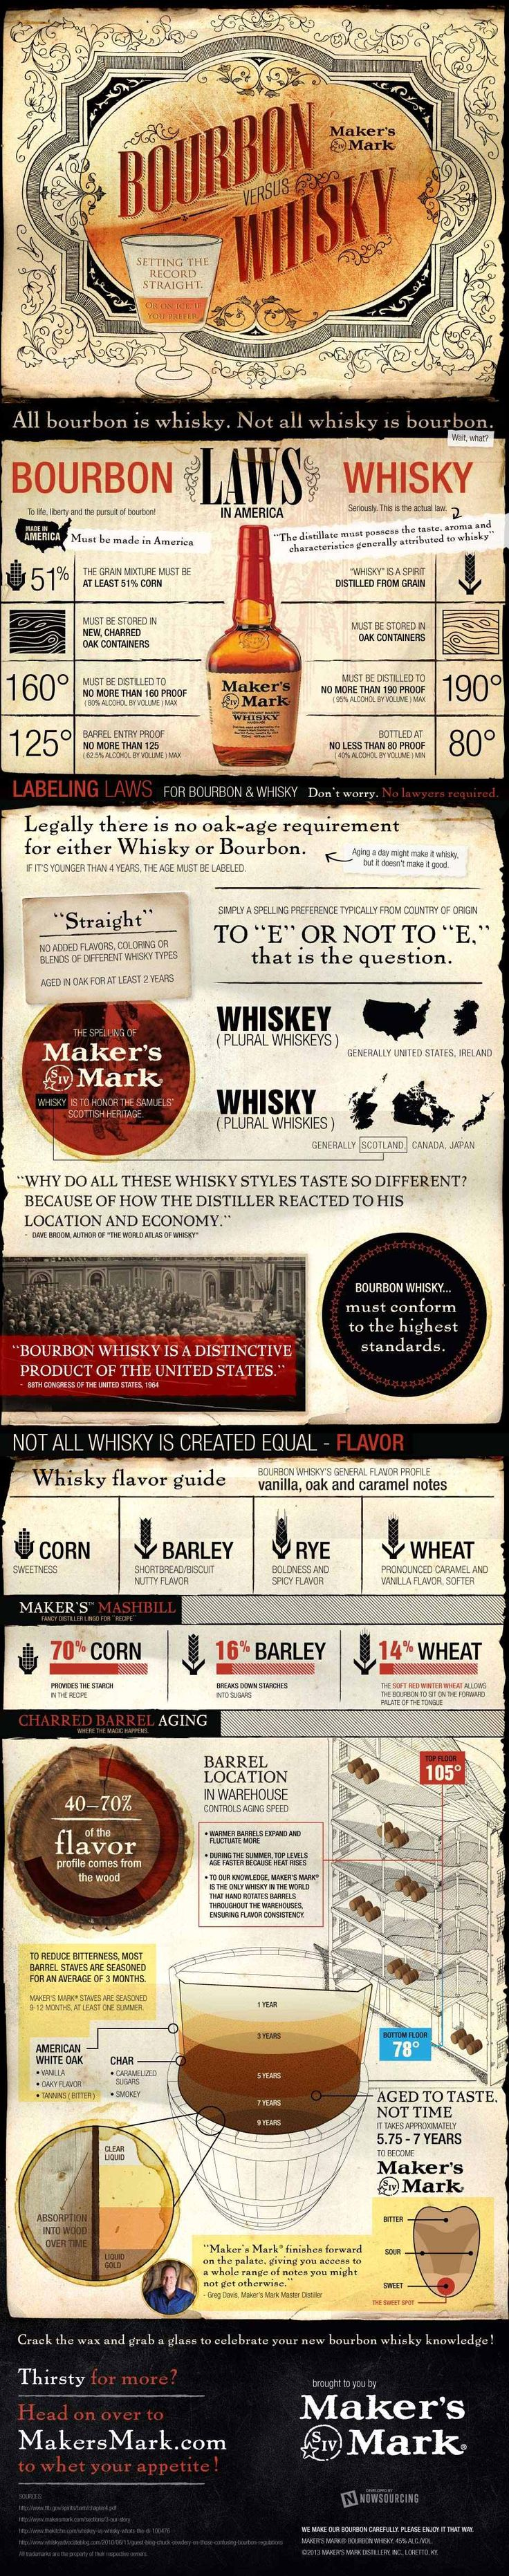 #Bourbon vs. #Whisky: setting the record straight. (Or on ice, if you prefer.) #Infographic